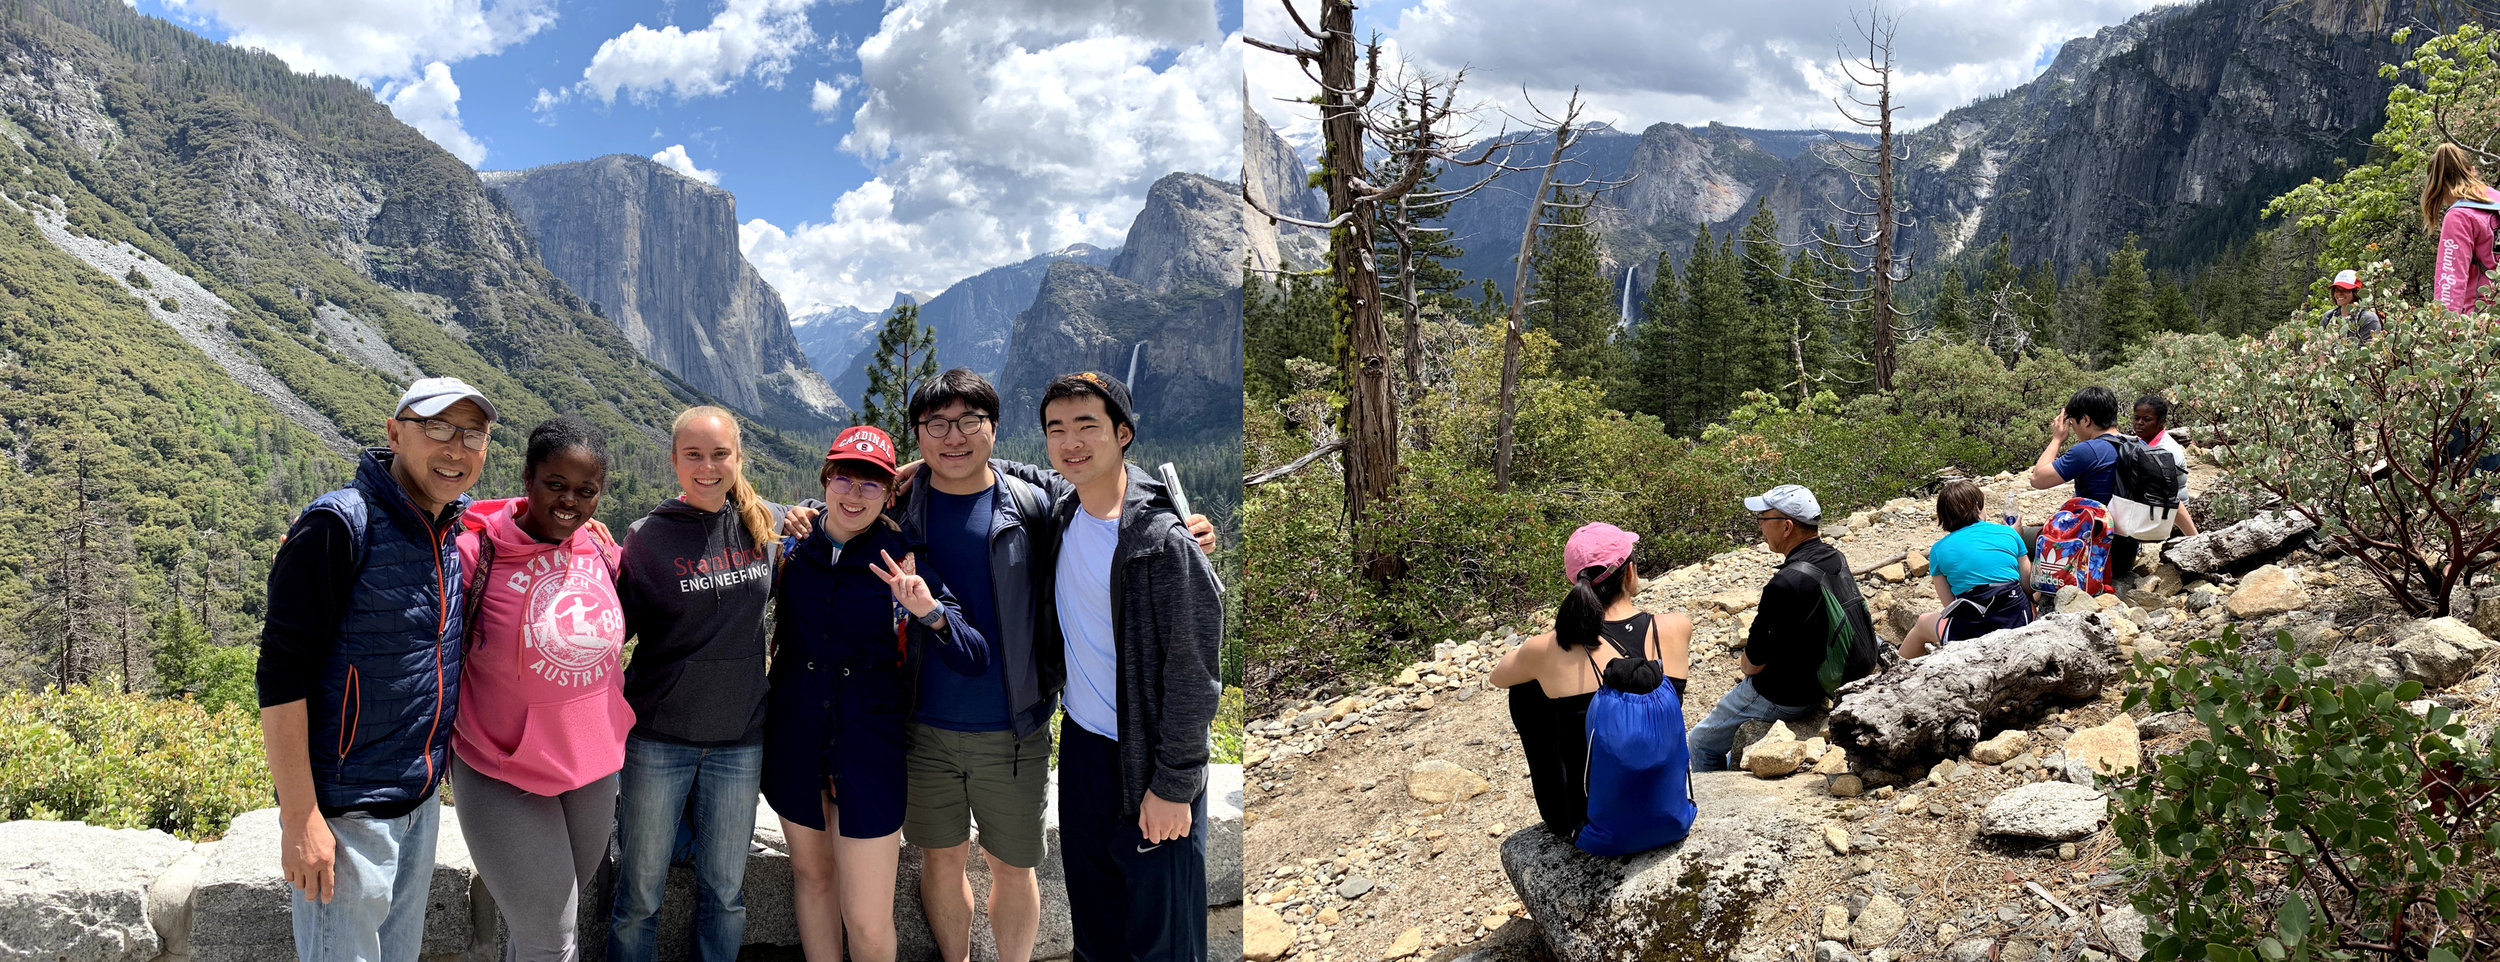 May 24th - 26th Ron, Katie and board member Kenji Hakuta hosted Stanford University EAST House students in Yosemite for a weekend trip.